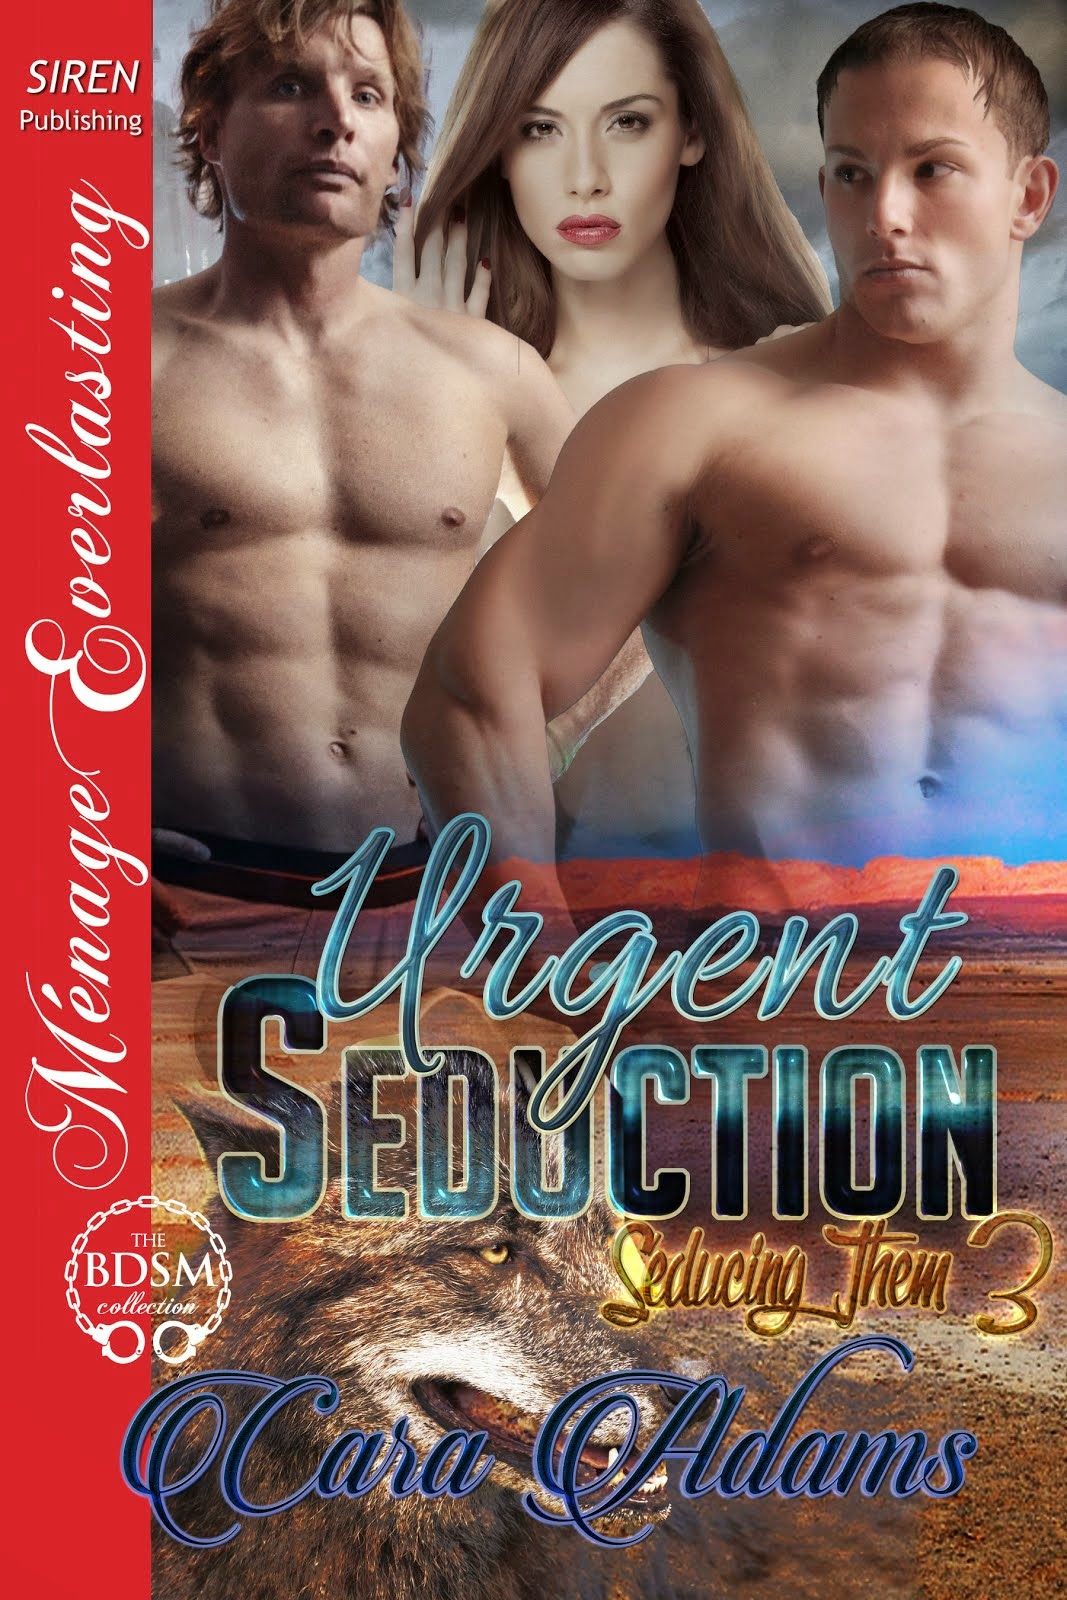 Urgent Seduction